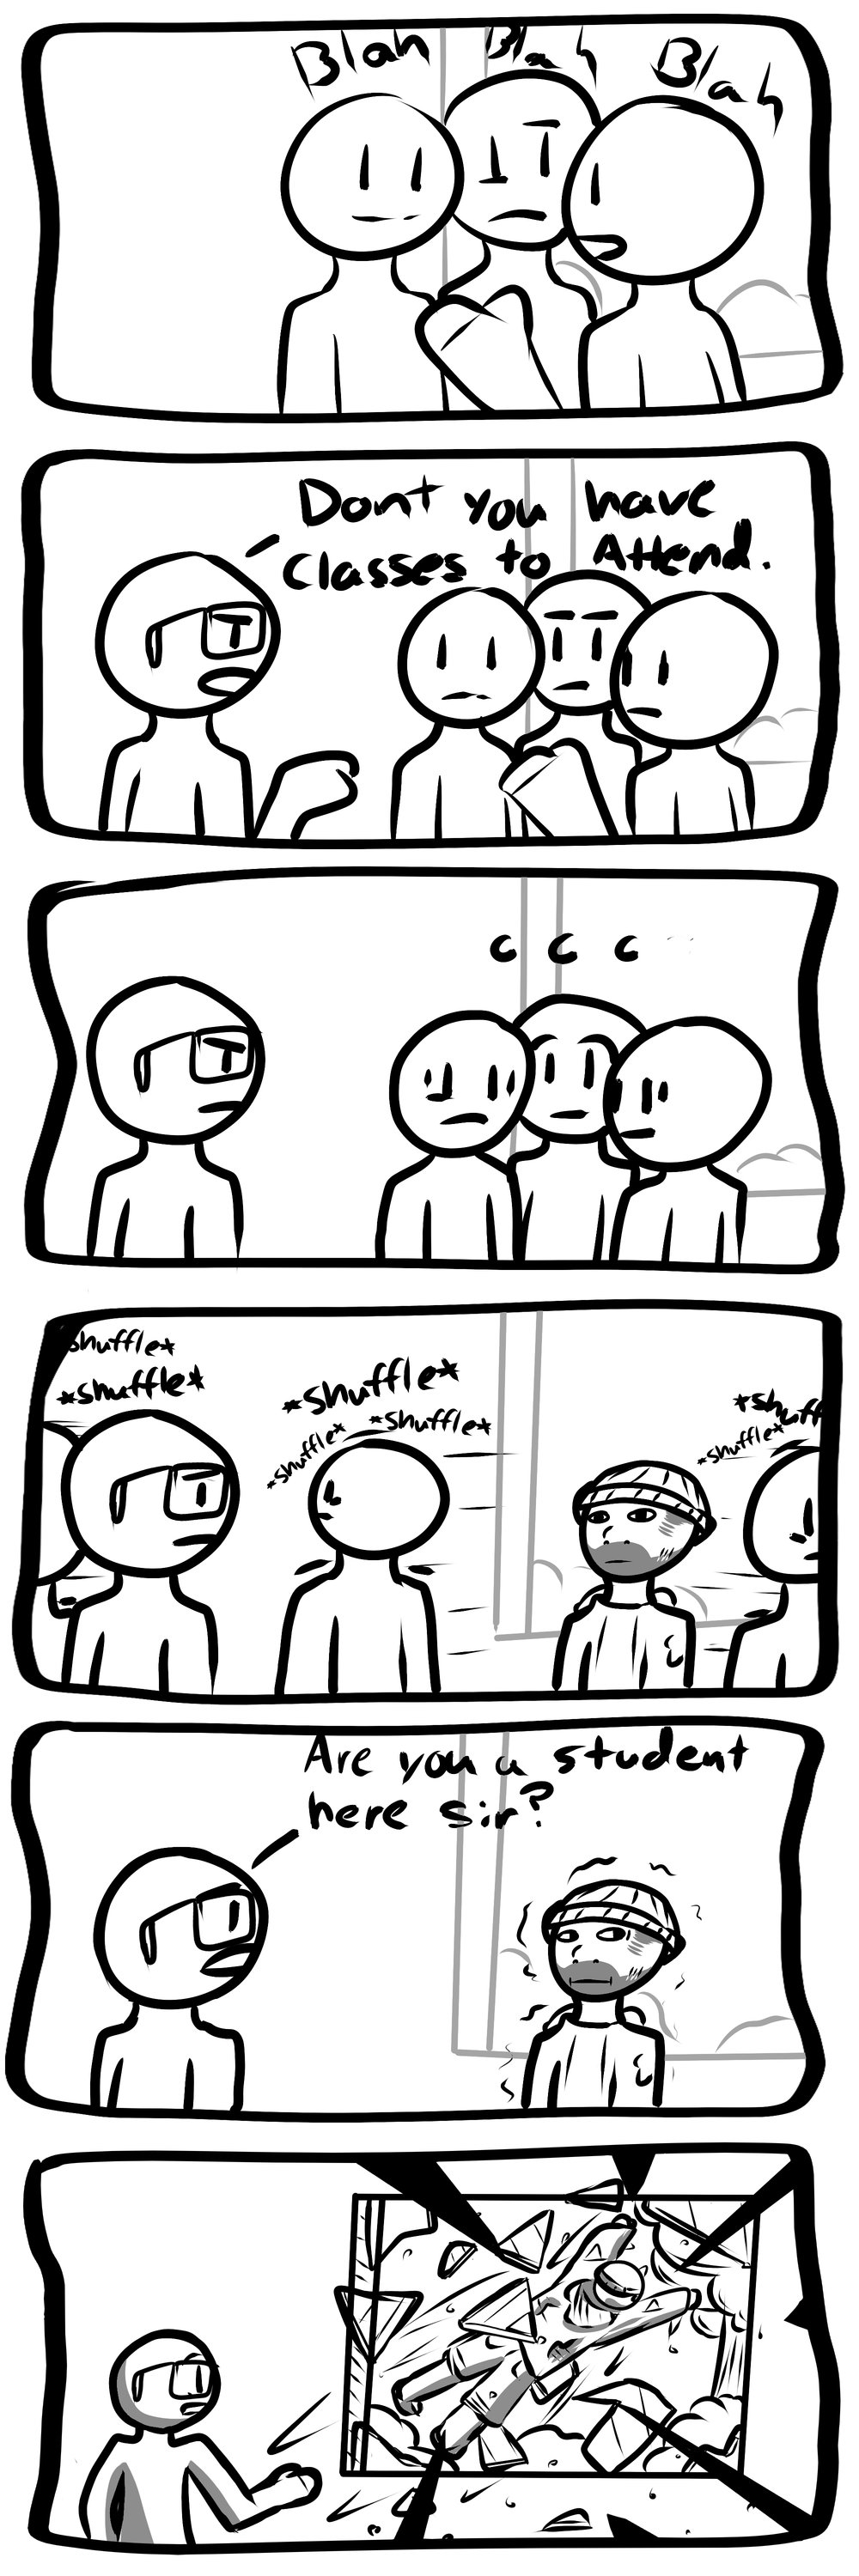 Comic for Ryan.jpg